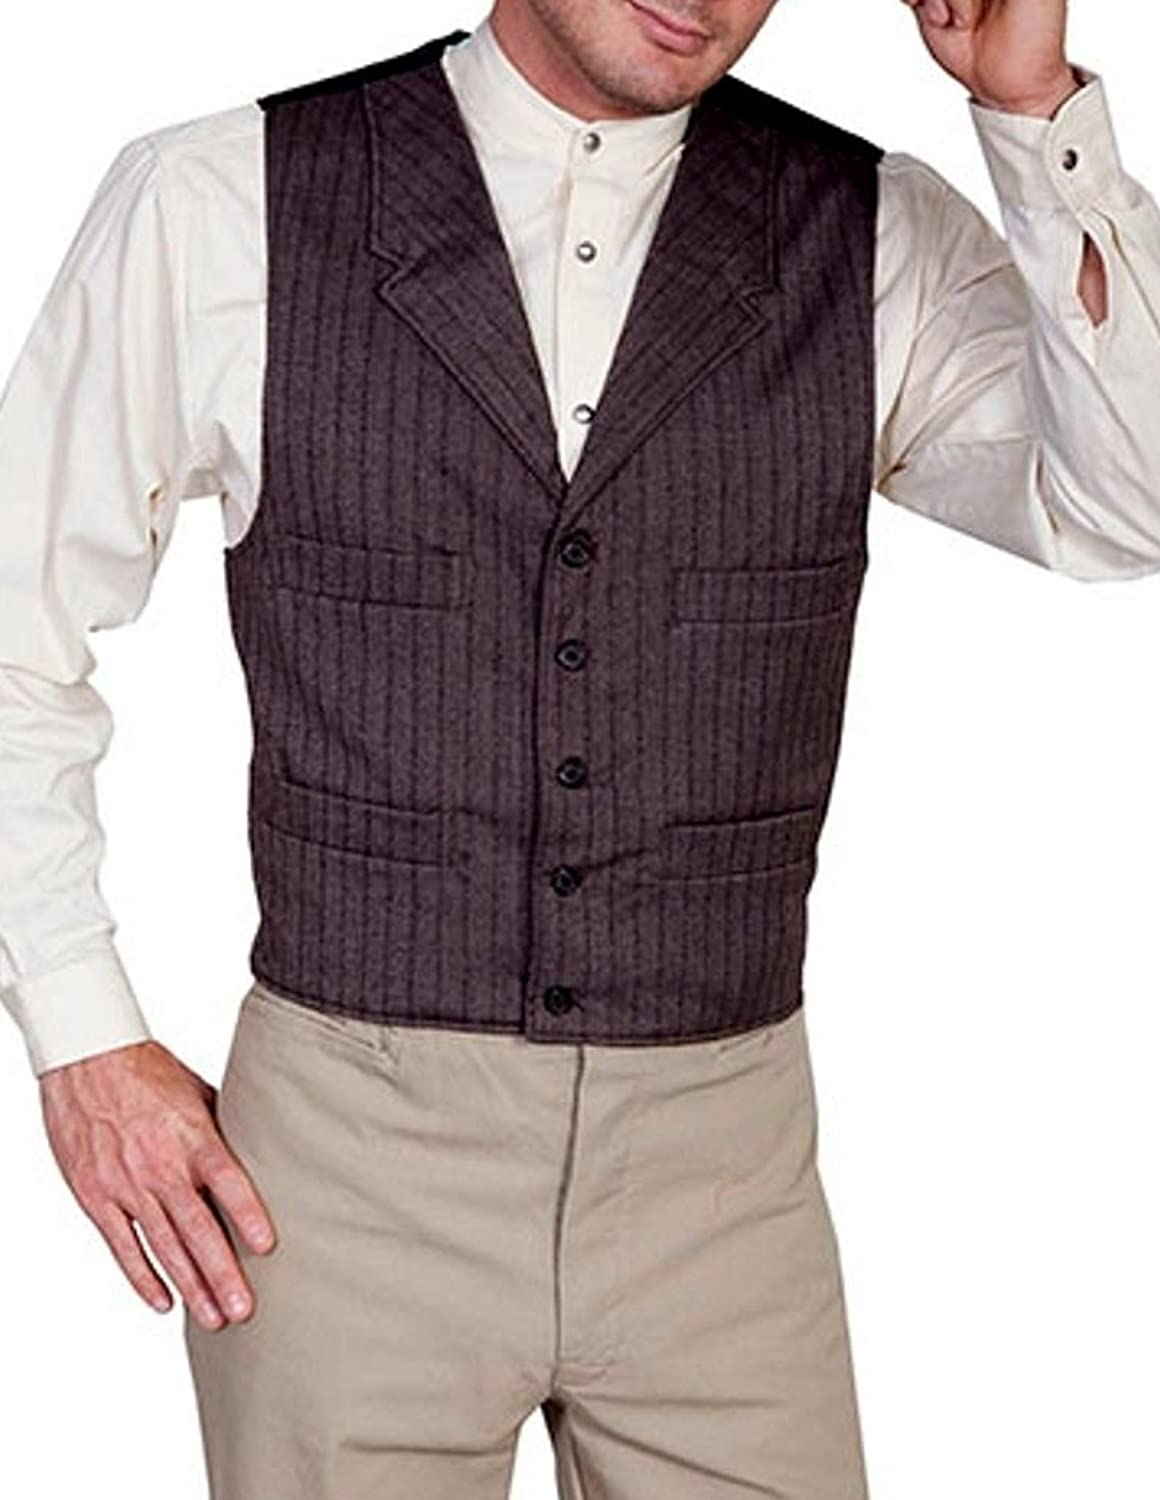 Steampunk Clothing- Men's Wahmaker By Scully Mens Old West Four Pocket Striped Vest - 541164-Gry $146.37 AT vintagedancer.com